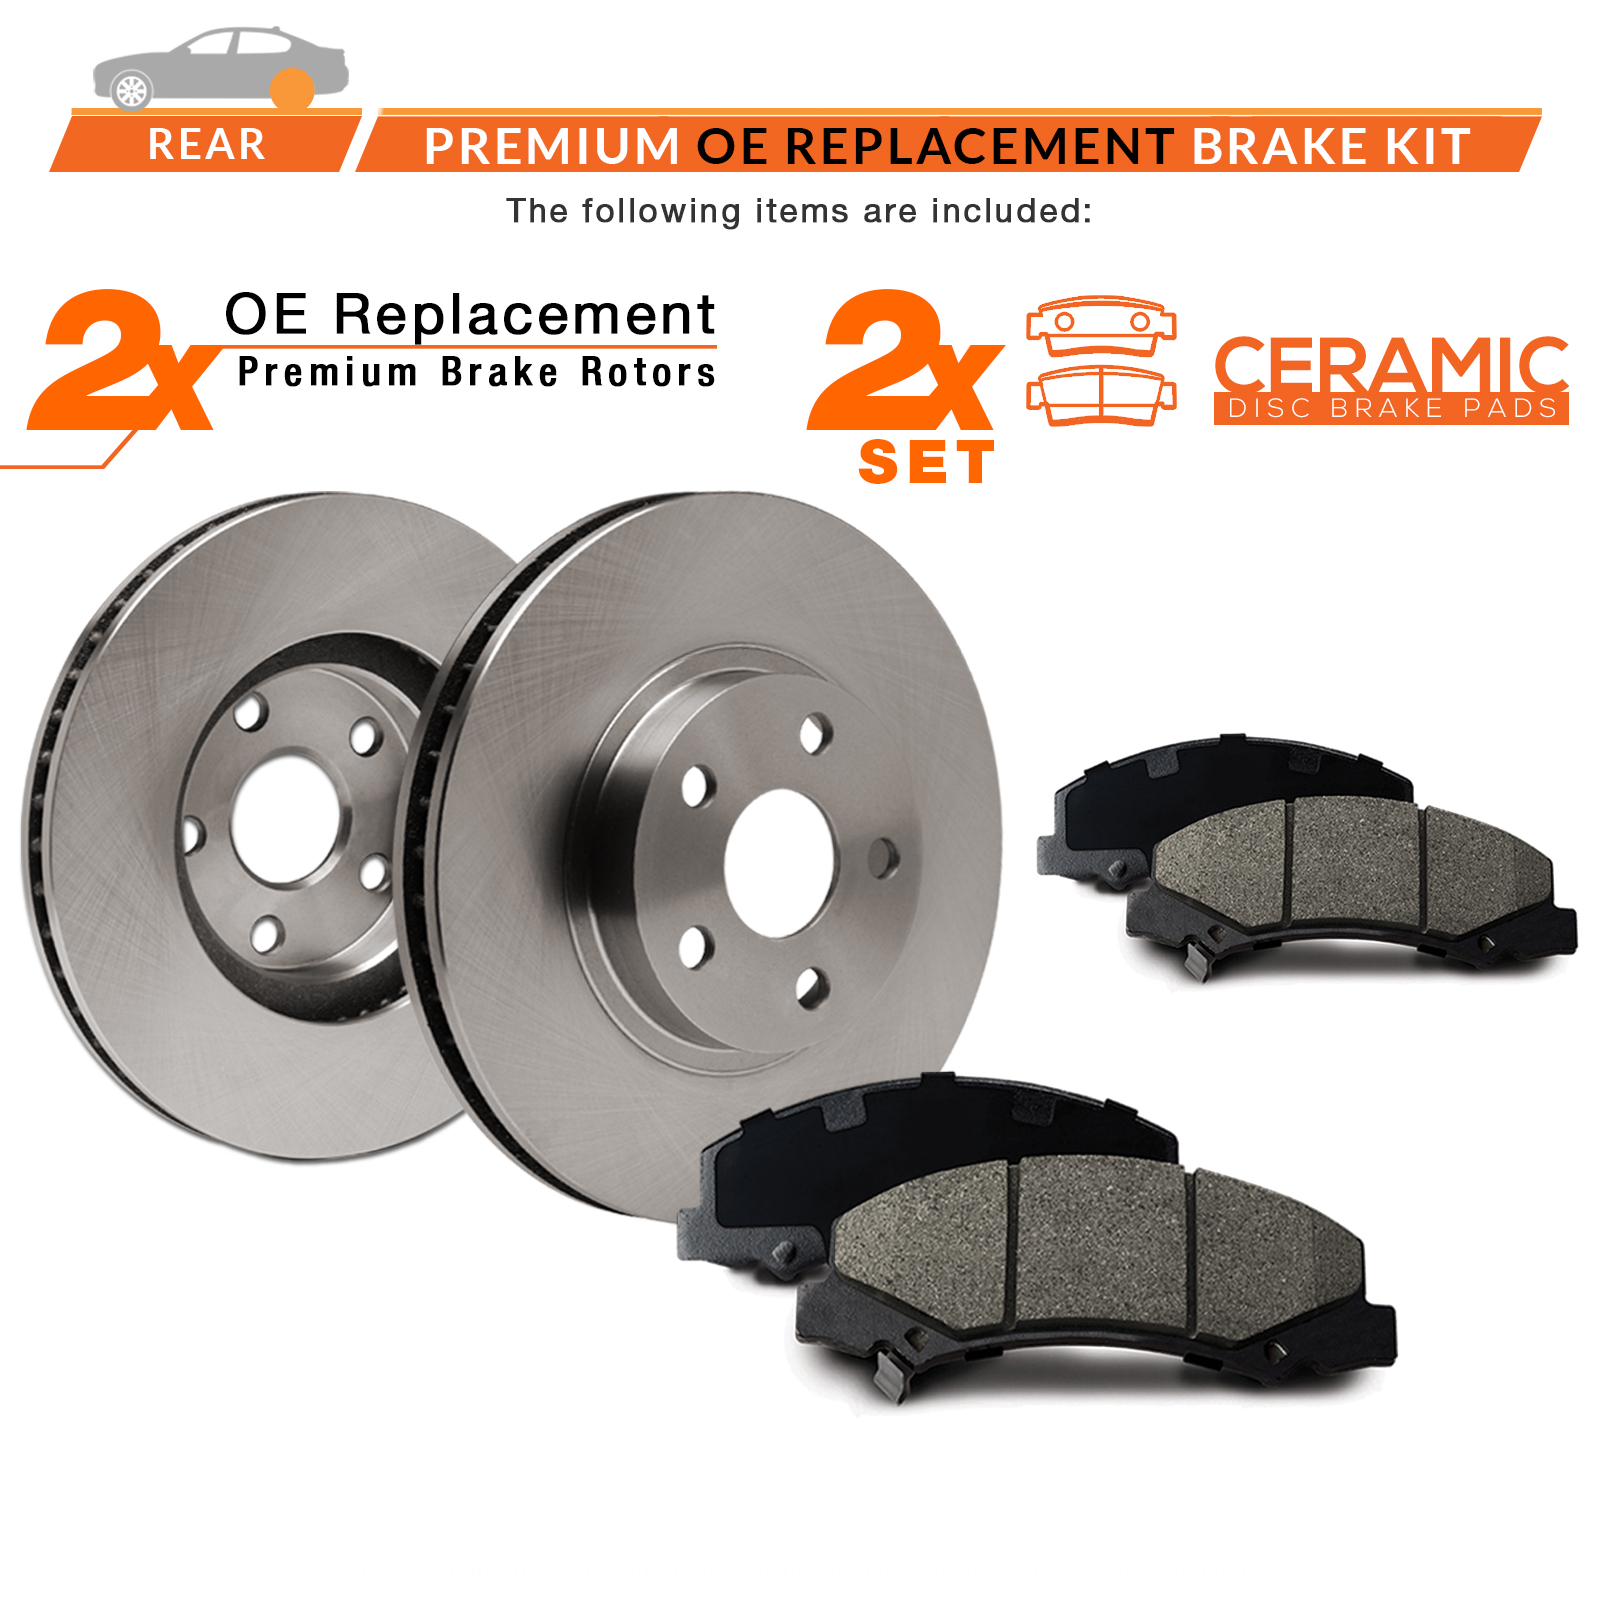 Rear-Rotors-w-Ceramic-Pads-OE-Brakes-2012-2017-Grand-Caravan-Journey thumbnail 2